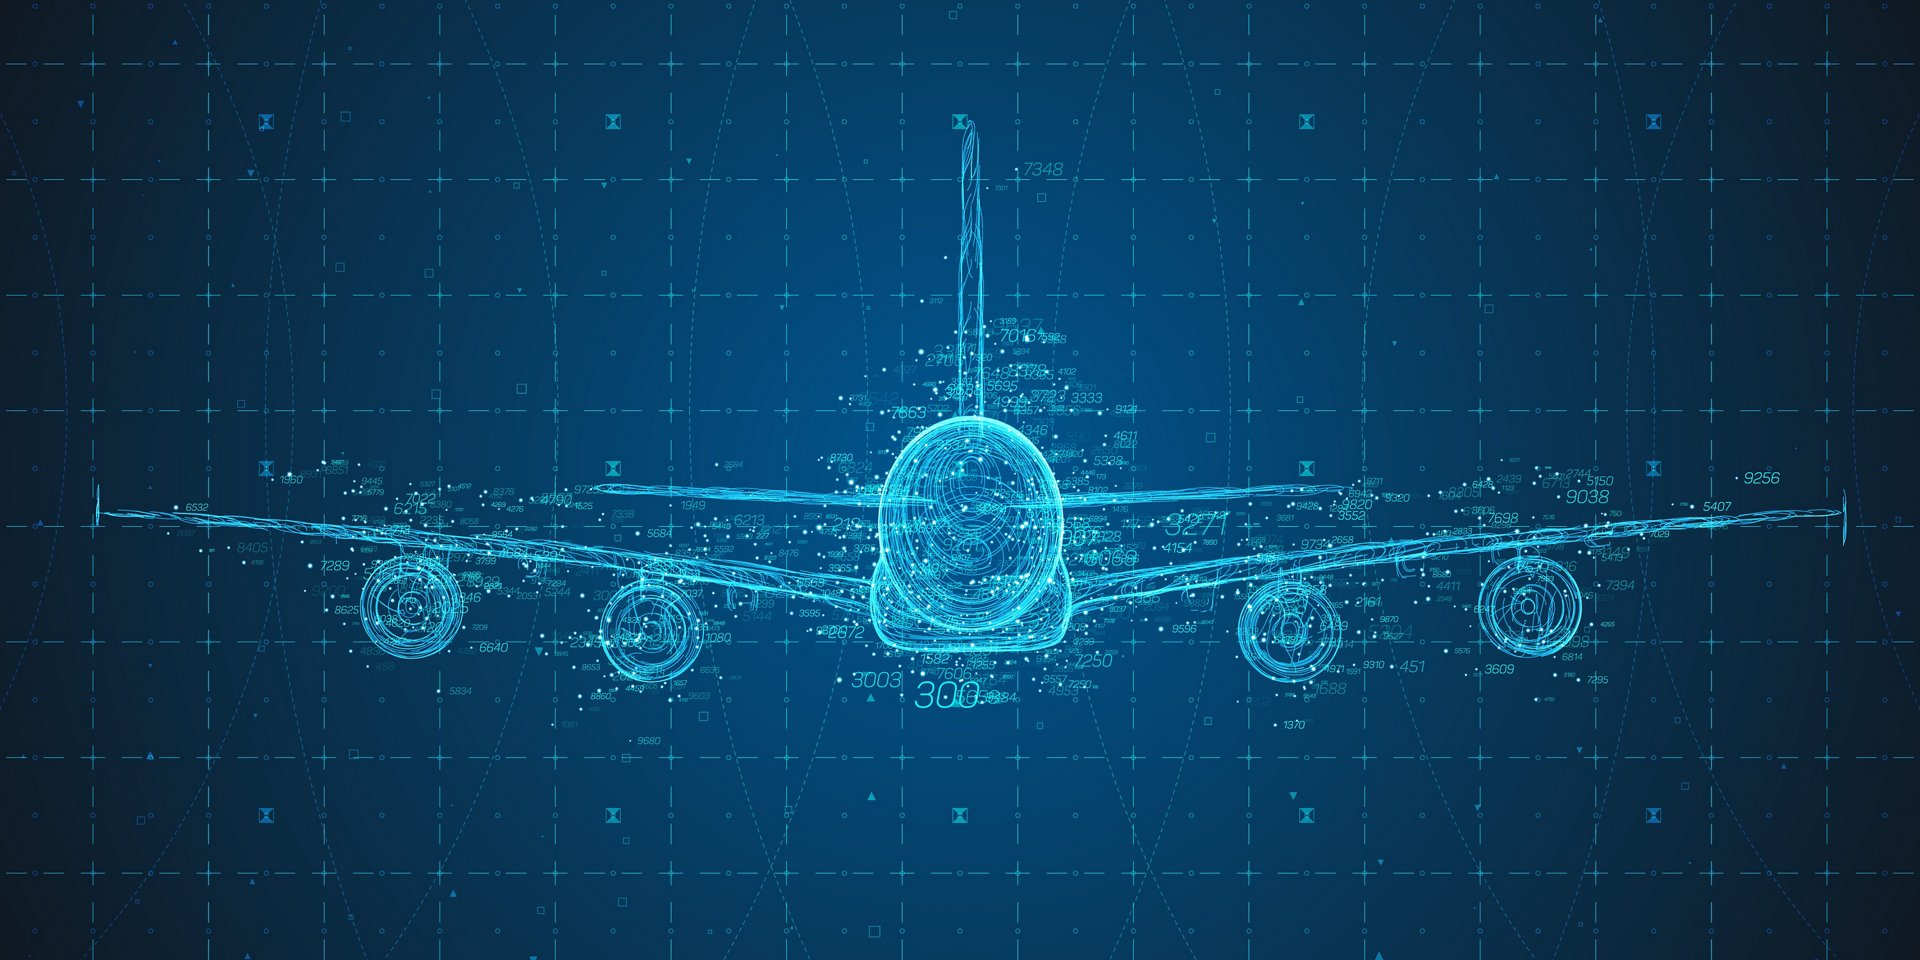 Aircraft Data - Internet Of Things IoT in aviation